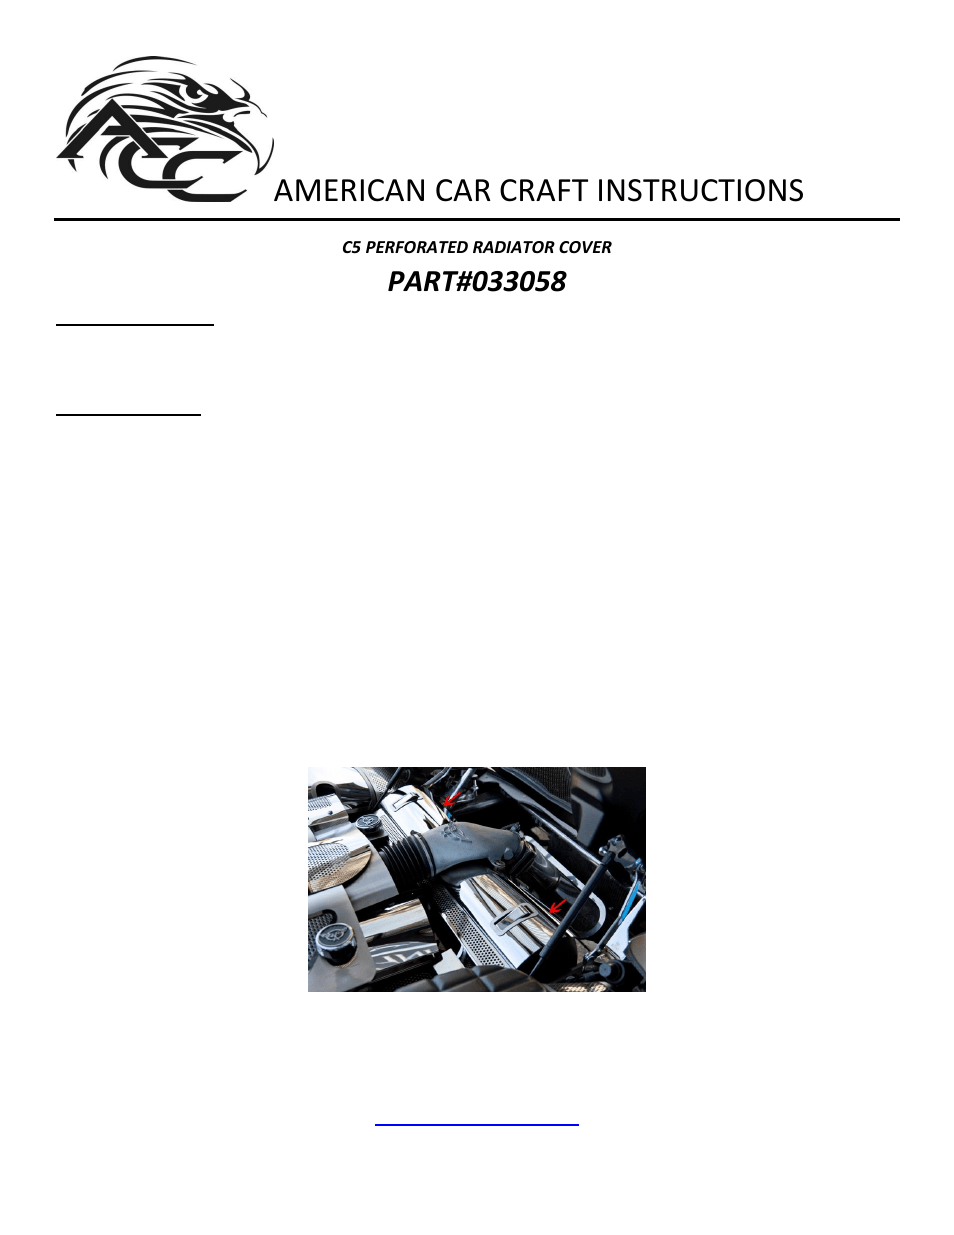 medium resolution of american car craft corvette radiator cover perforated 1997 2004 c5 z06 user manual 1 page